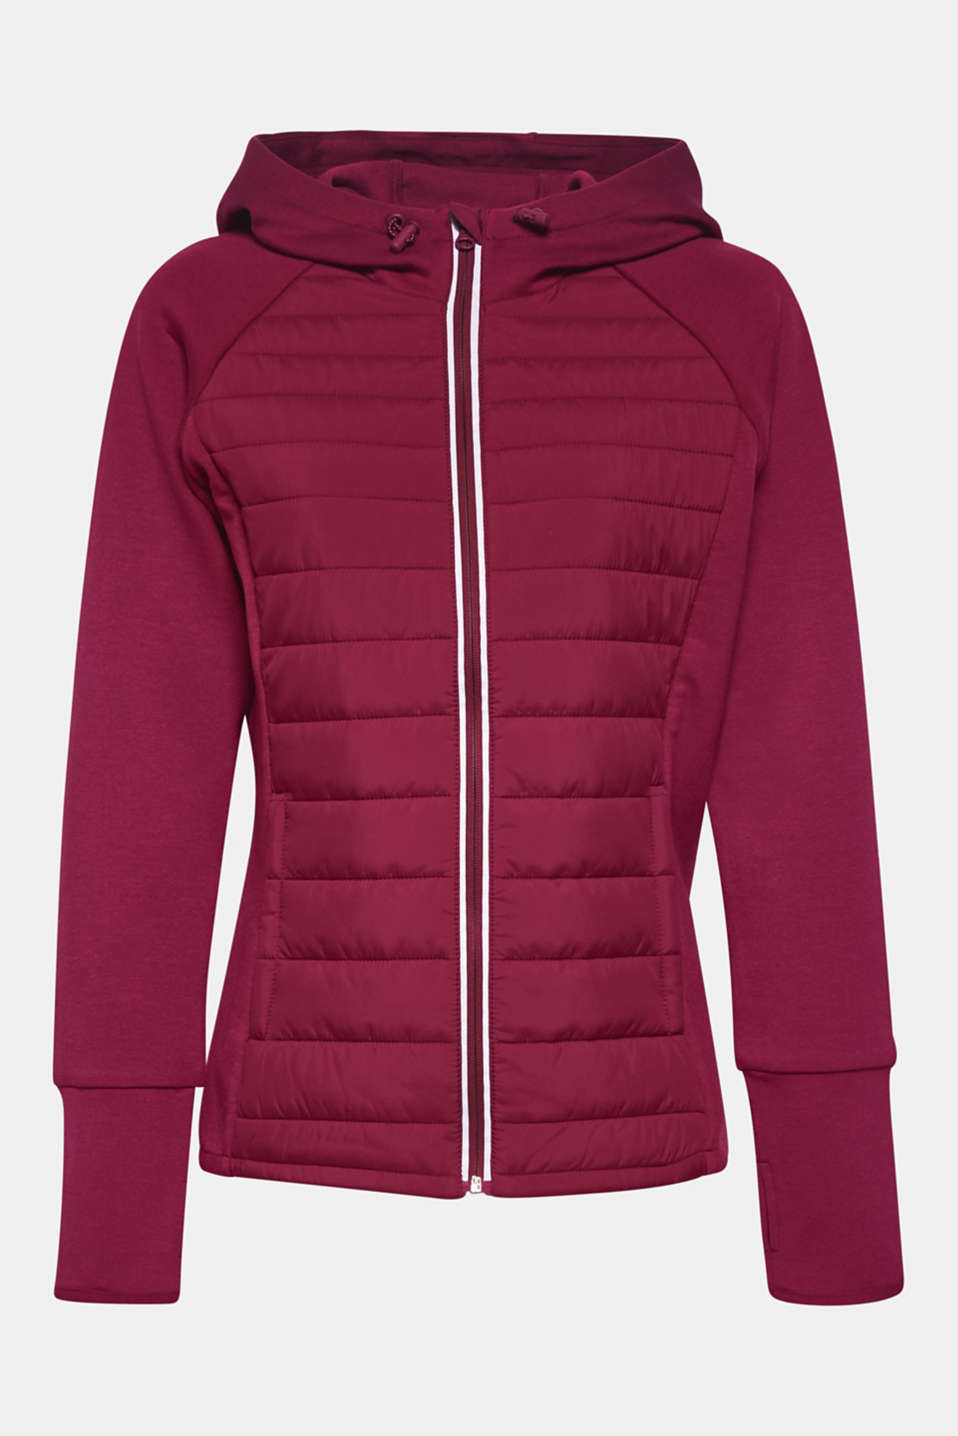 Hooded jacket in a mix of materials, DARK PINK, detail image number 6